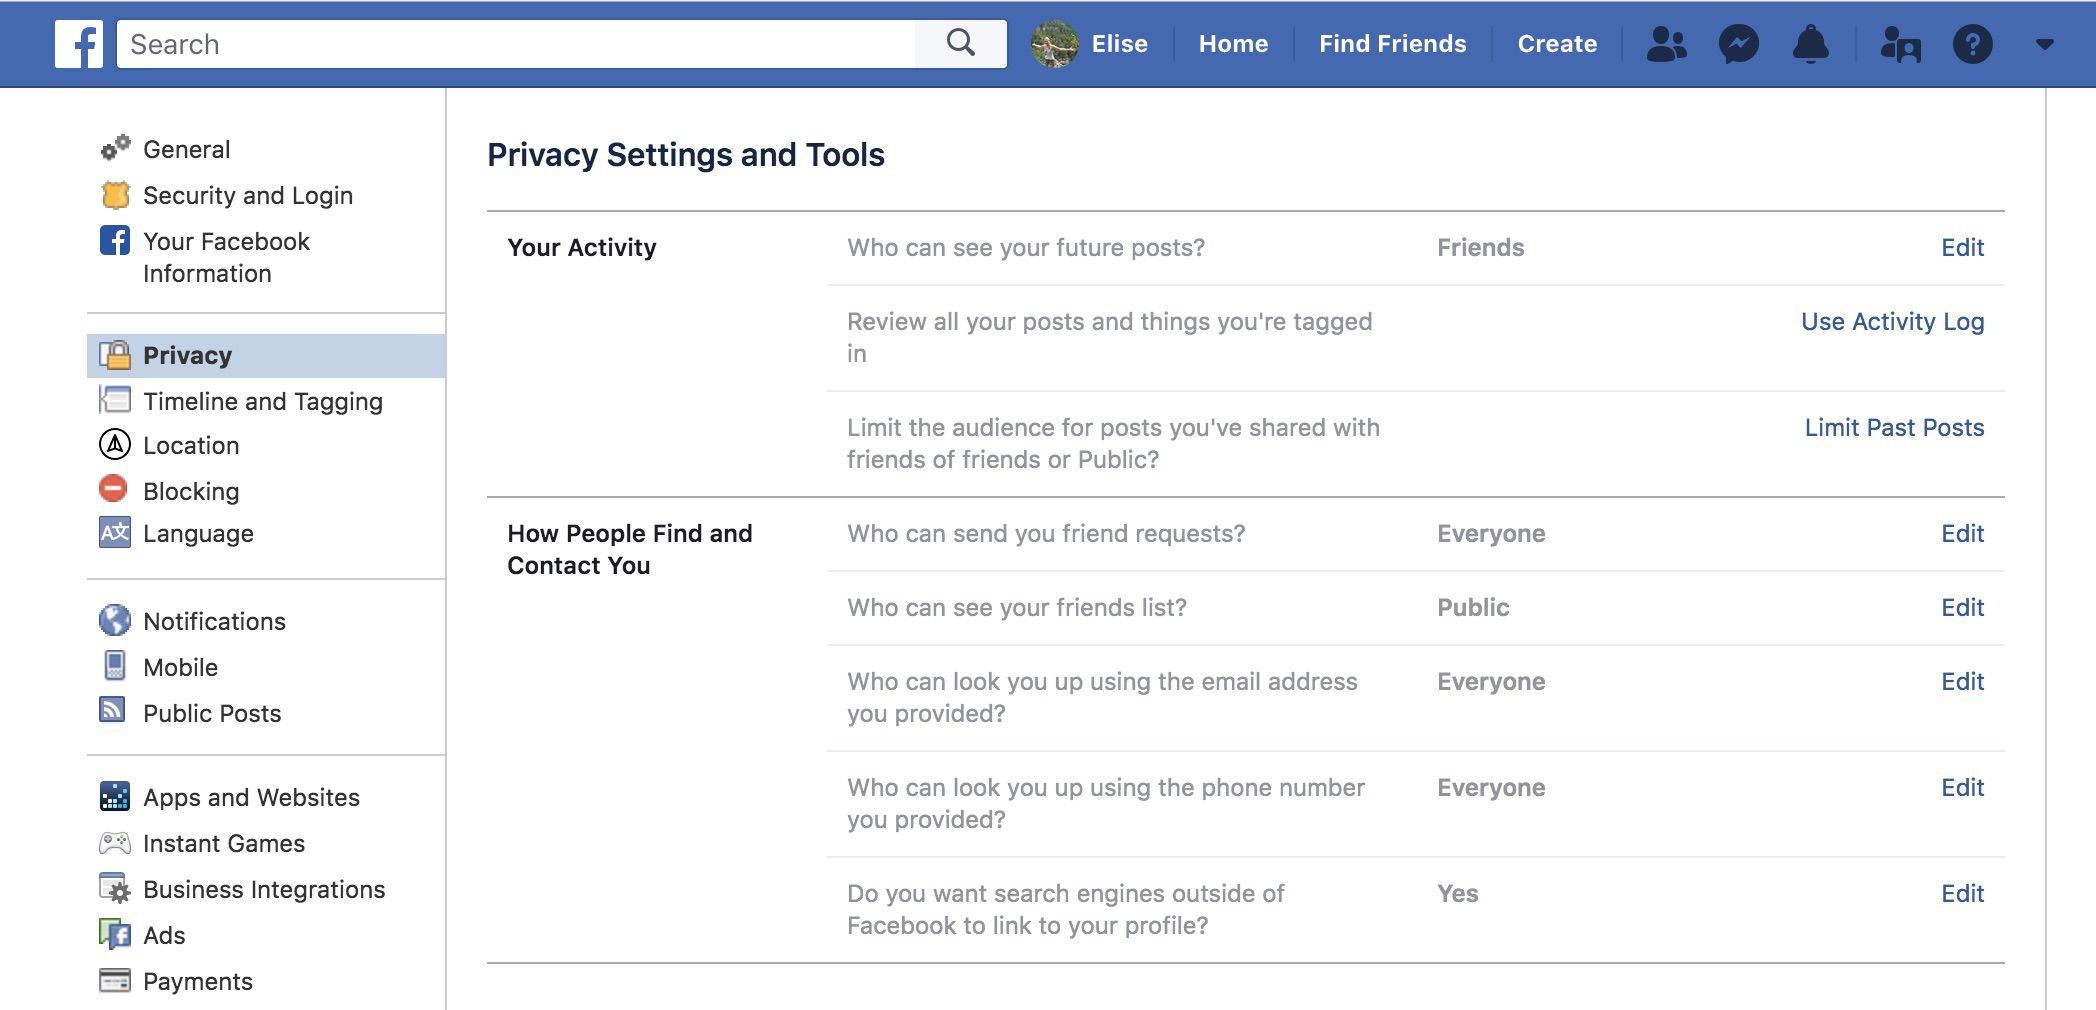 How to Set Up a Facebook Account and Secure Your Profile